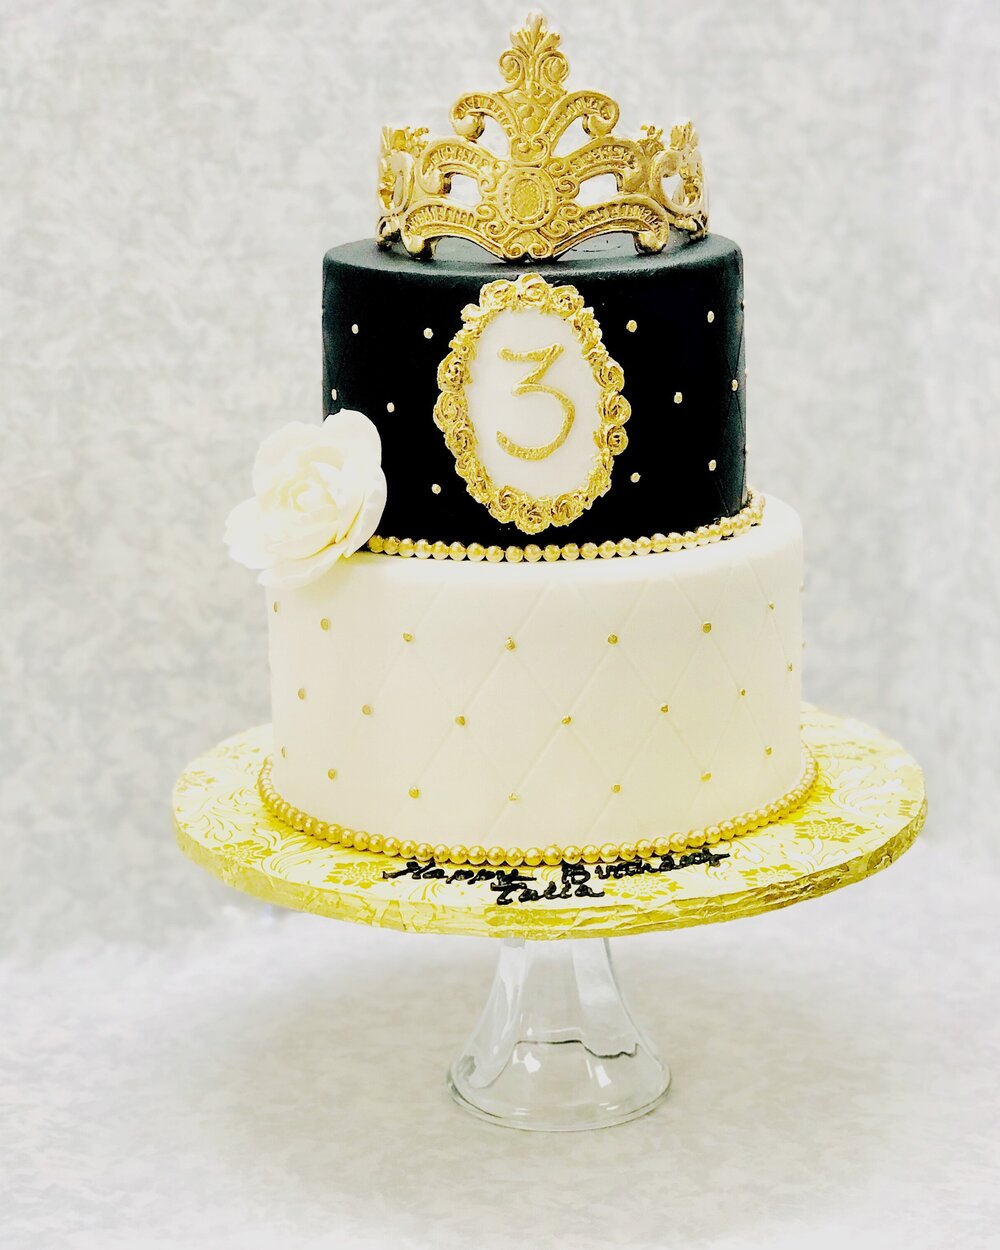 Black & White Royalty Cake